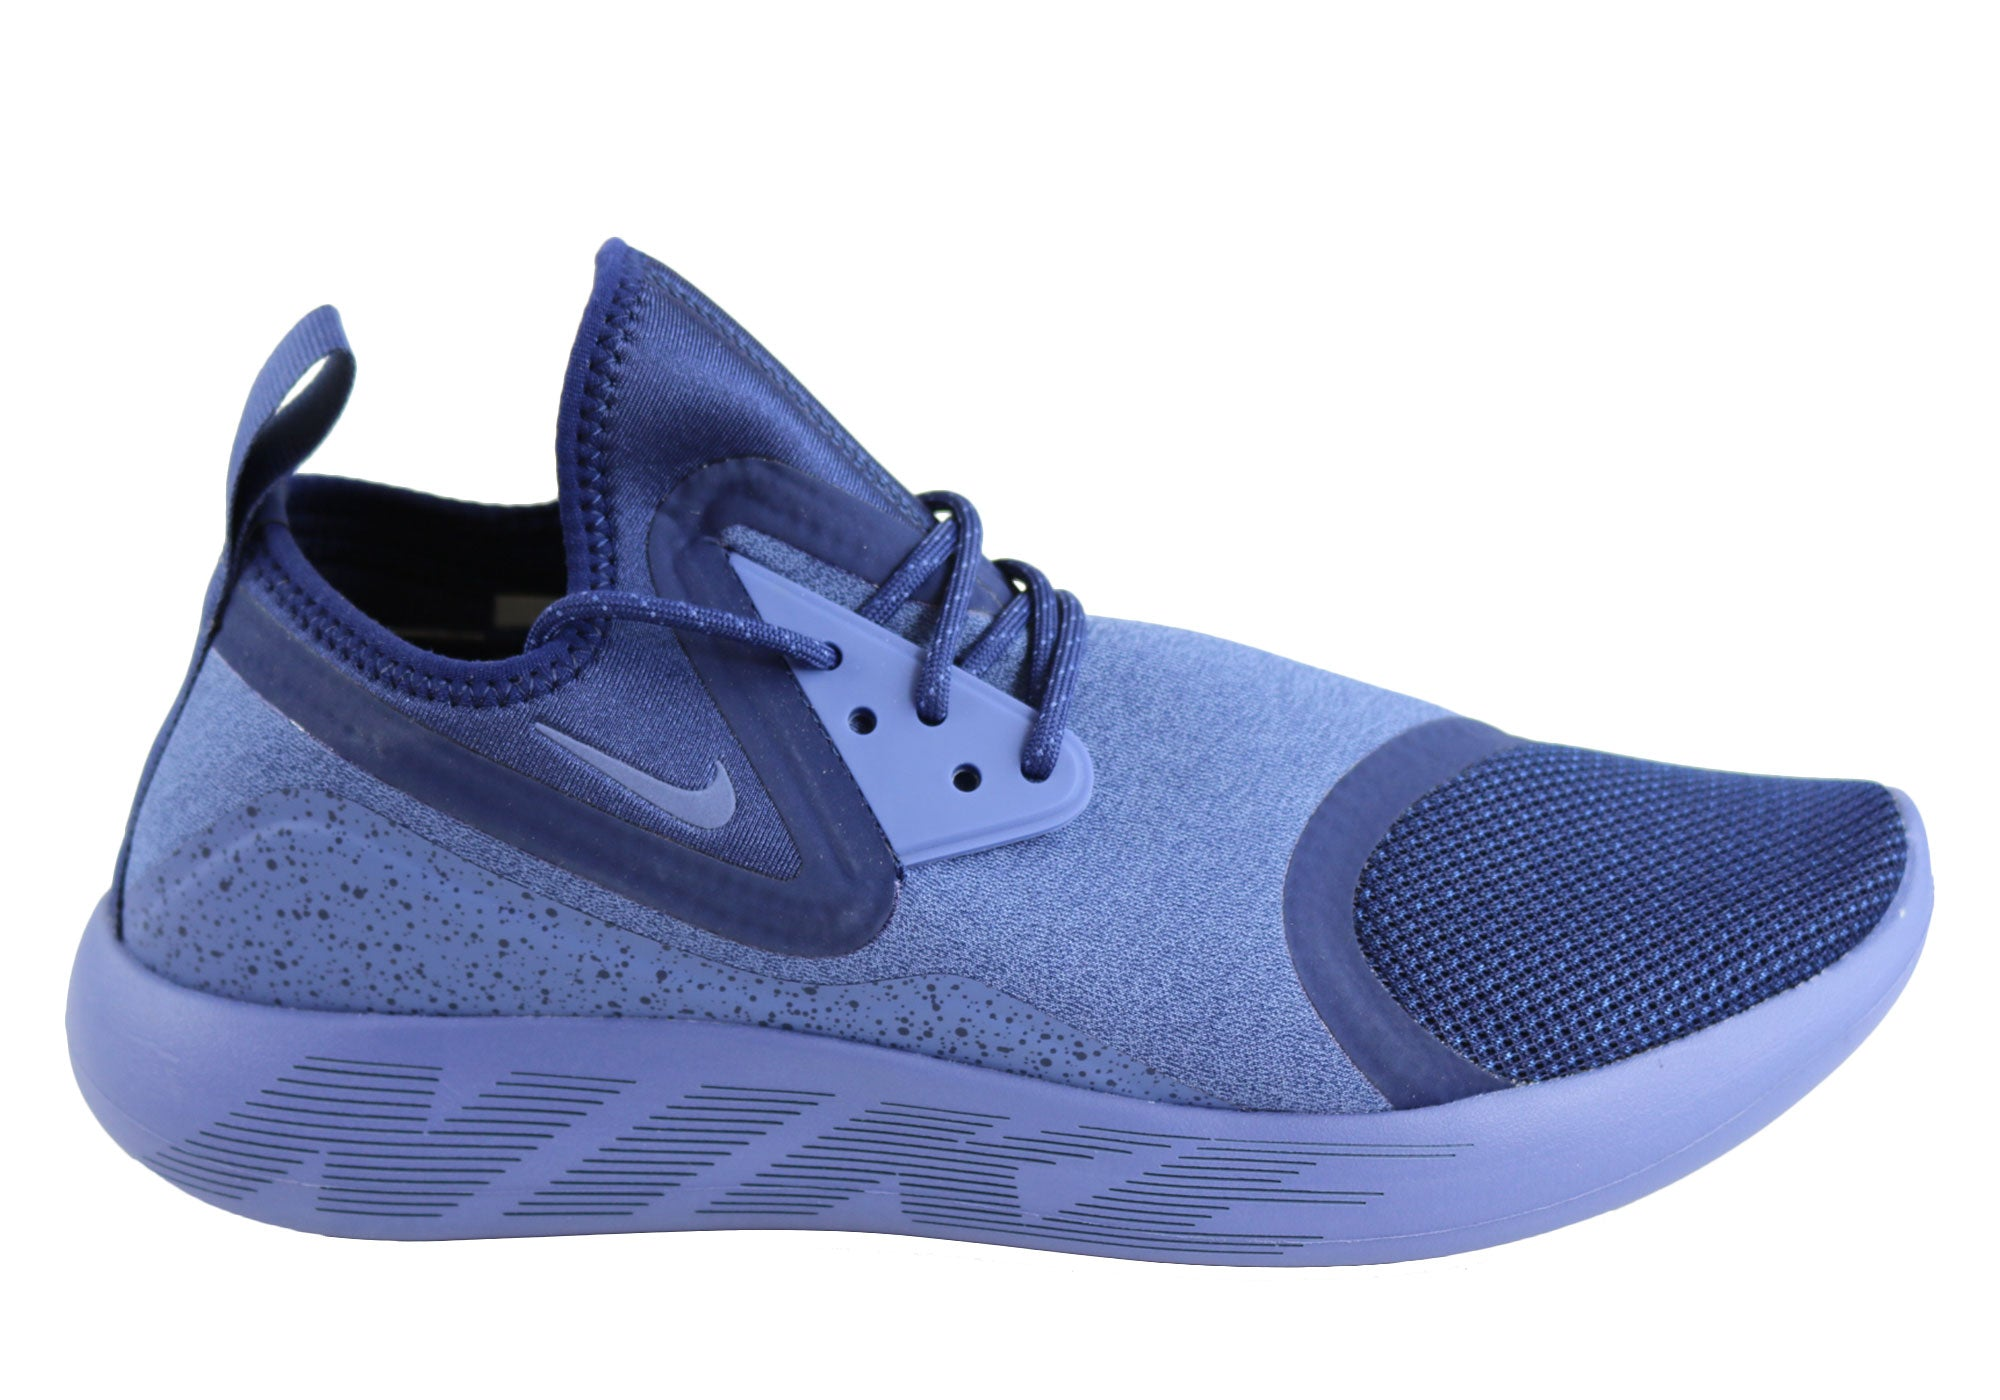 678968aa9a Nike Mens Lunarcharge Essential Comfortable Athletic Trainers Shoes | Brand  House Direct